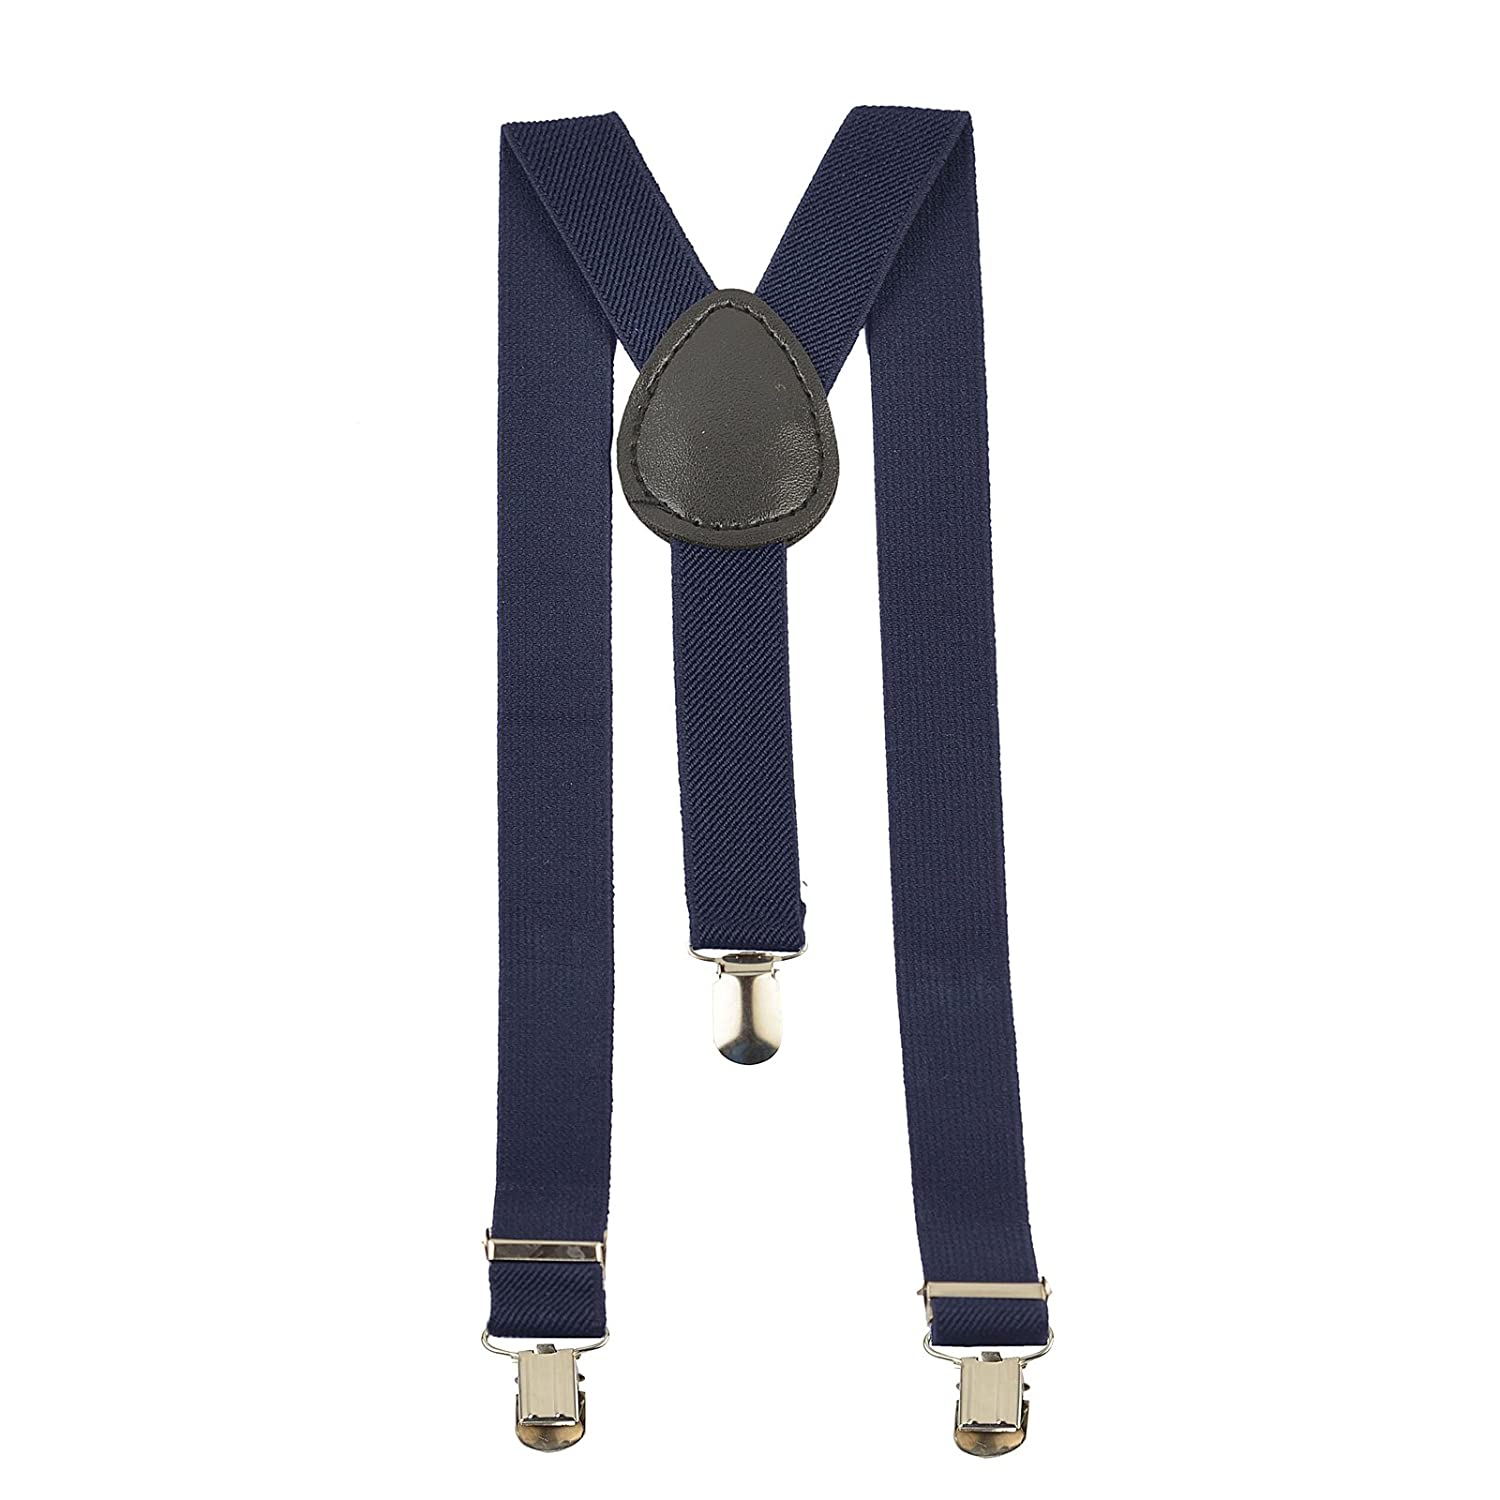 CrayonFlakes Kids Wear For Boys Y-Back Suspender Stretchable /Free Size